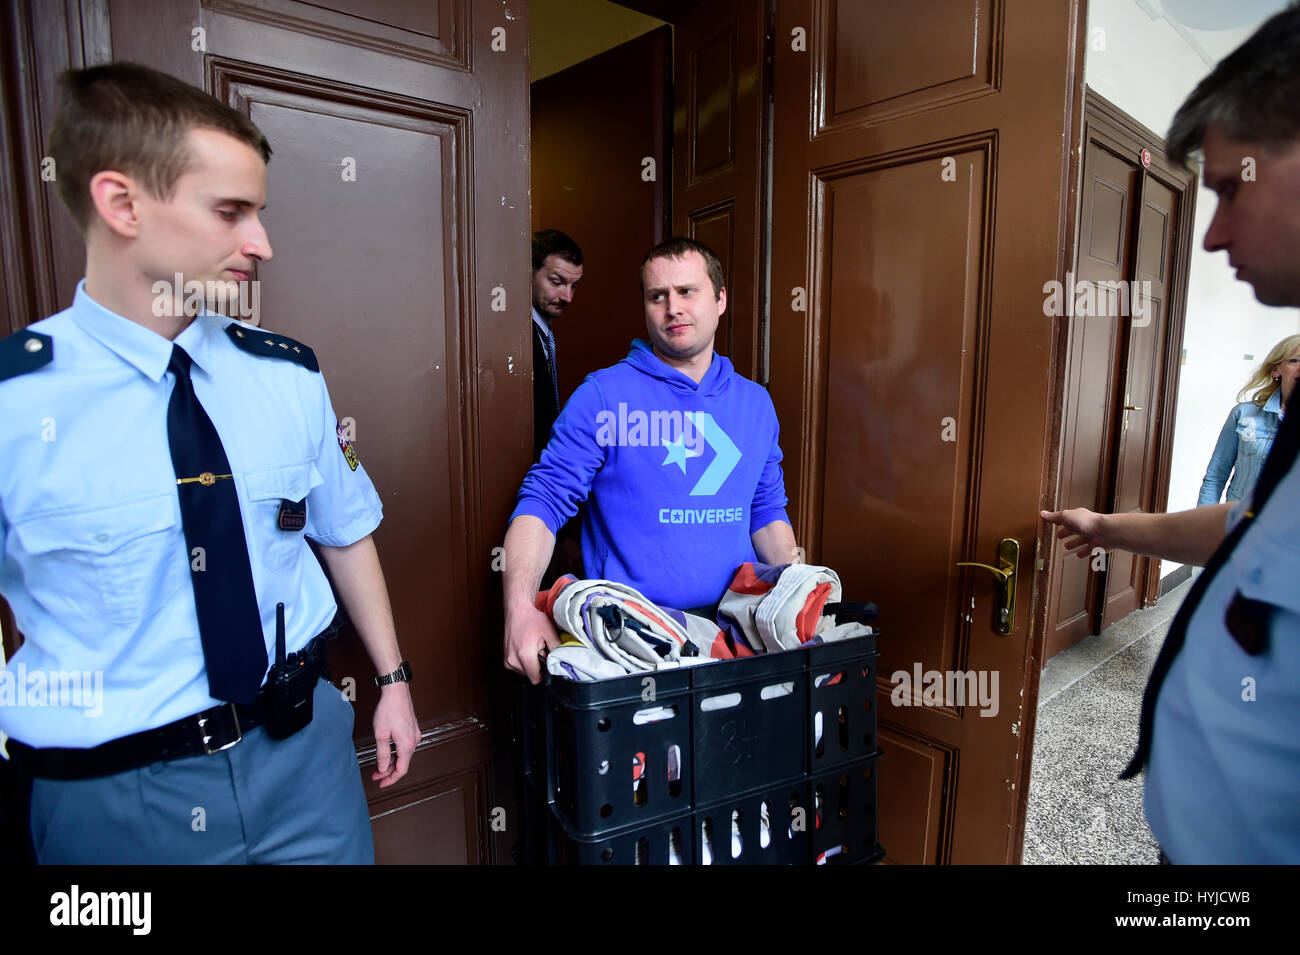 Prague, Czech Republic. 05th Apr, 2017. Court again deals with case of Ztohoven artistic group's members who - Stock Image